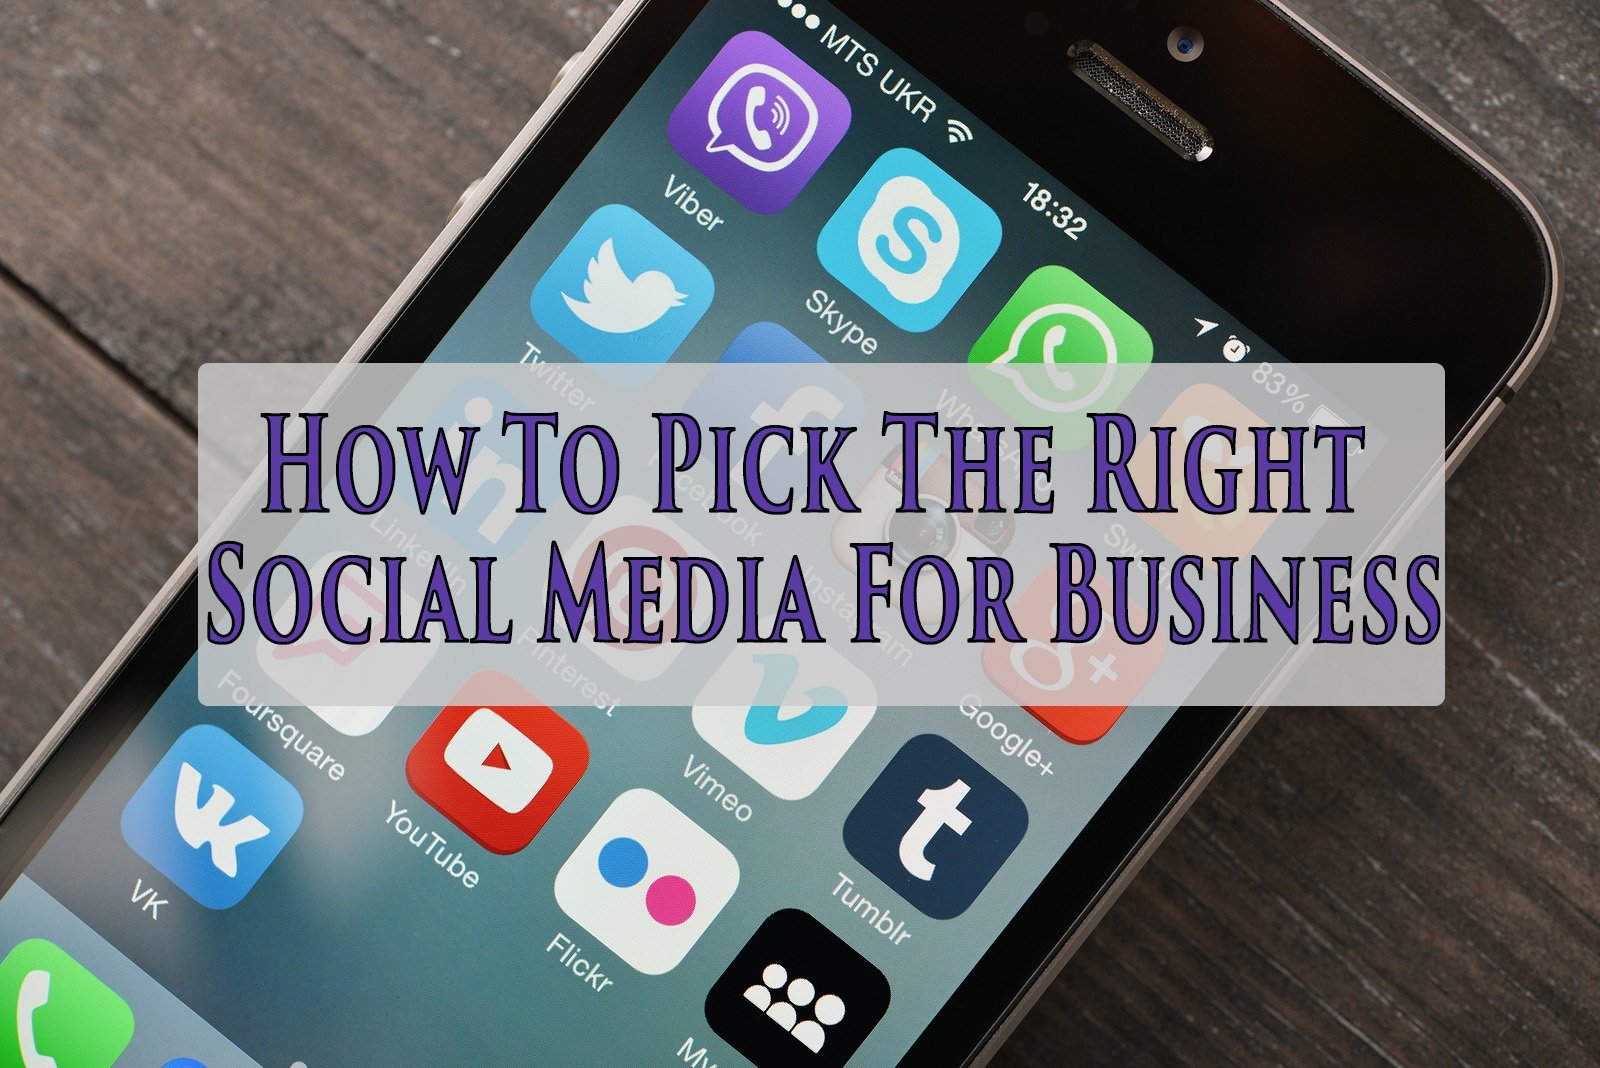 how-to-pick-the-right-social-media-for-business.jpg